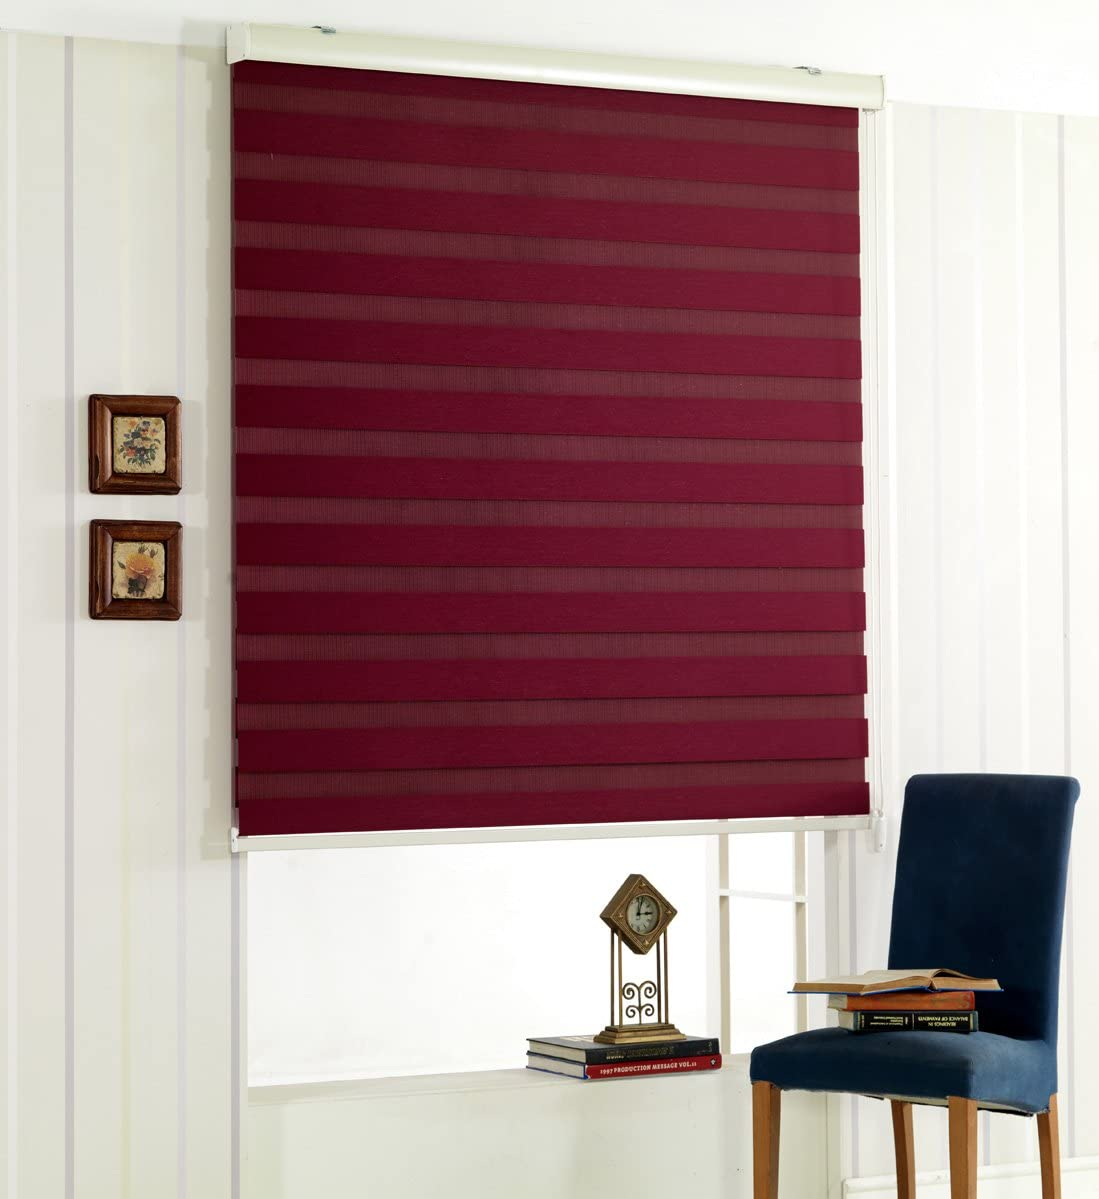 Foiresoft Custom Cut to Size, Winsharp Woodlook 47, Wine, W 91 x H 47 inch Zebra Roller Blinds, Dual Layer Shades, Sheer or Privacy Light Control, Day and Night Window Drapes, 20 to 110 inch Wide